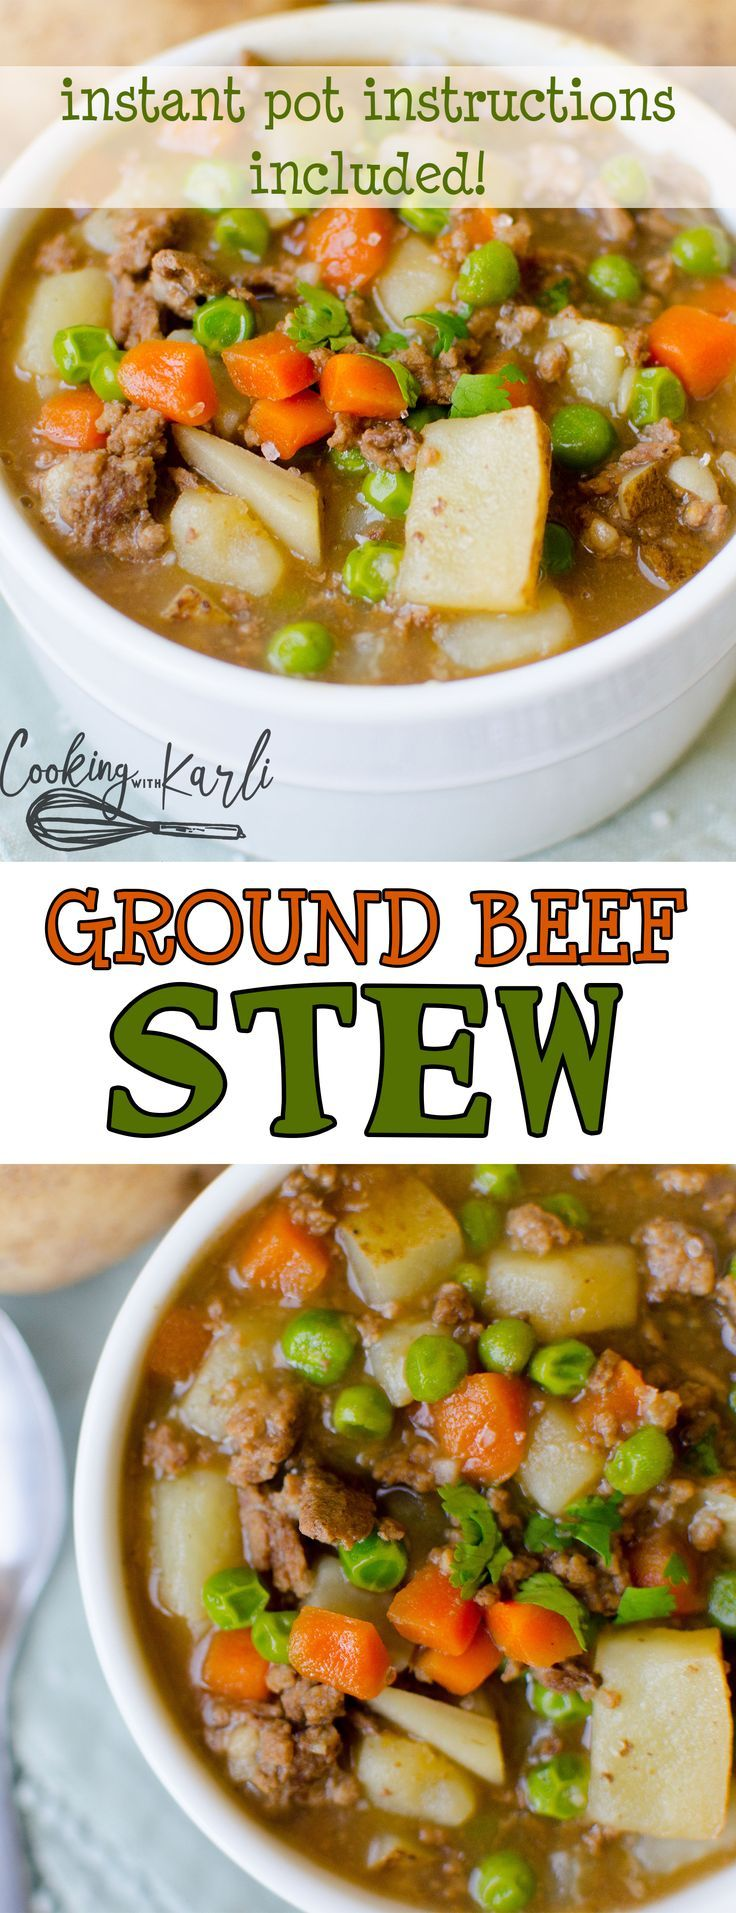 Ground Beef Stew In 2020 Beef Recipes For Dinner Beef Dinner Dinner With Ground Beef